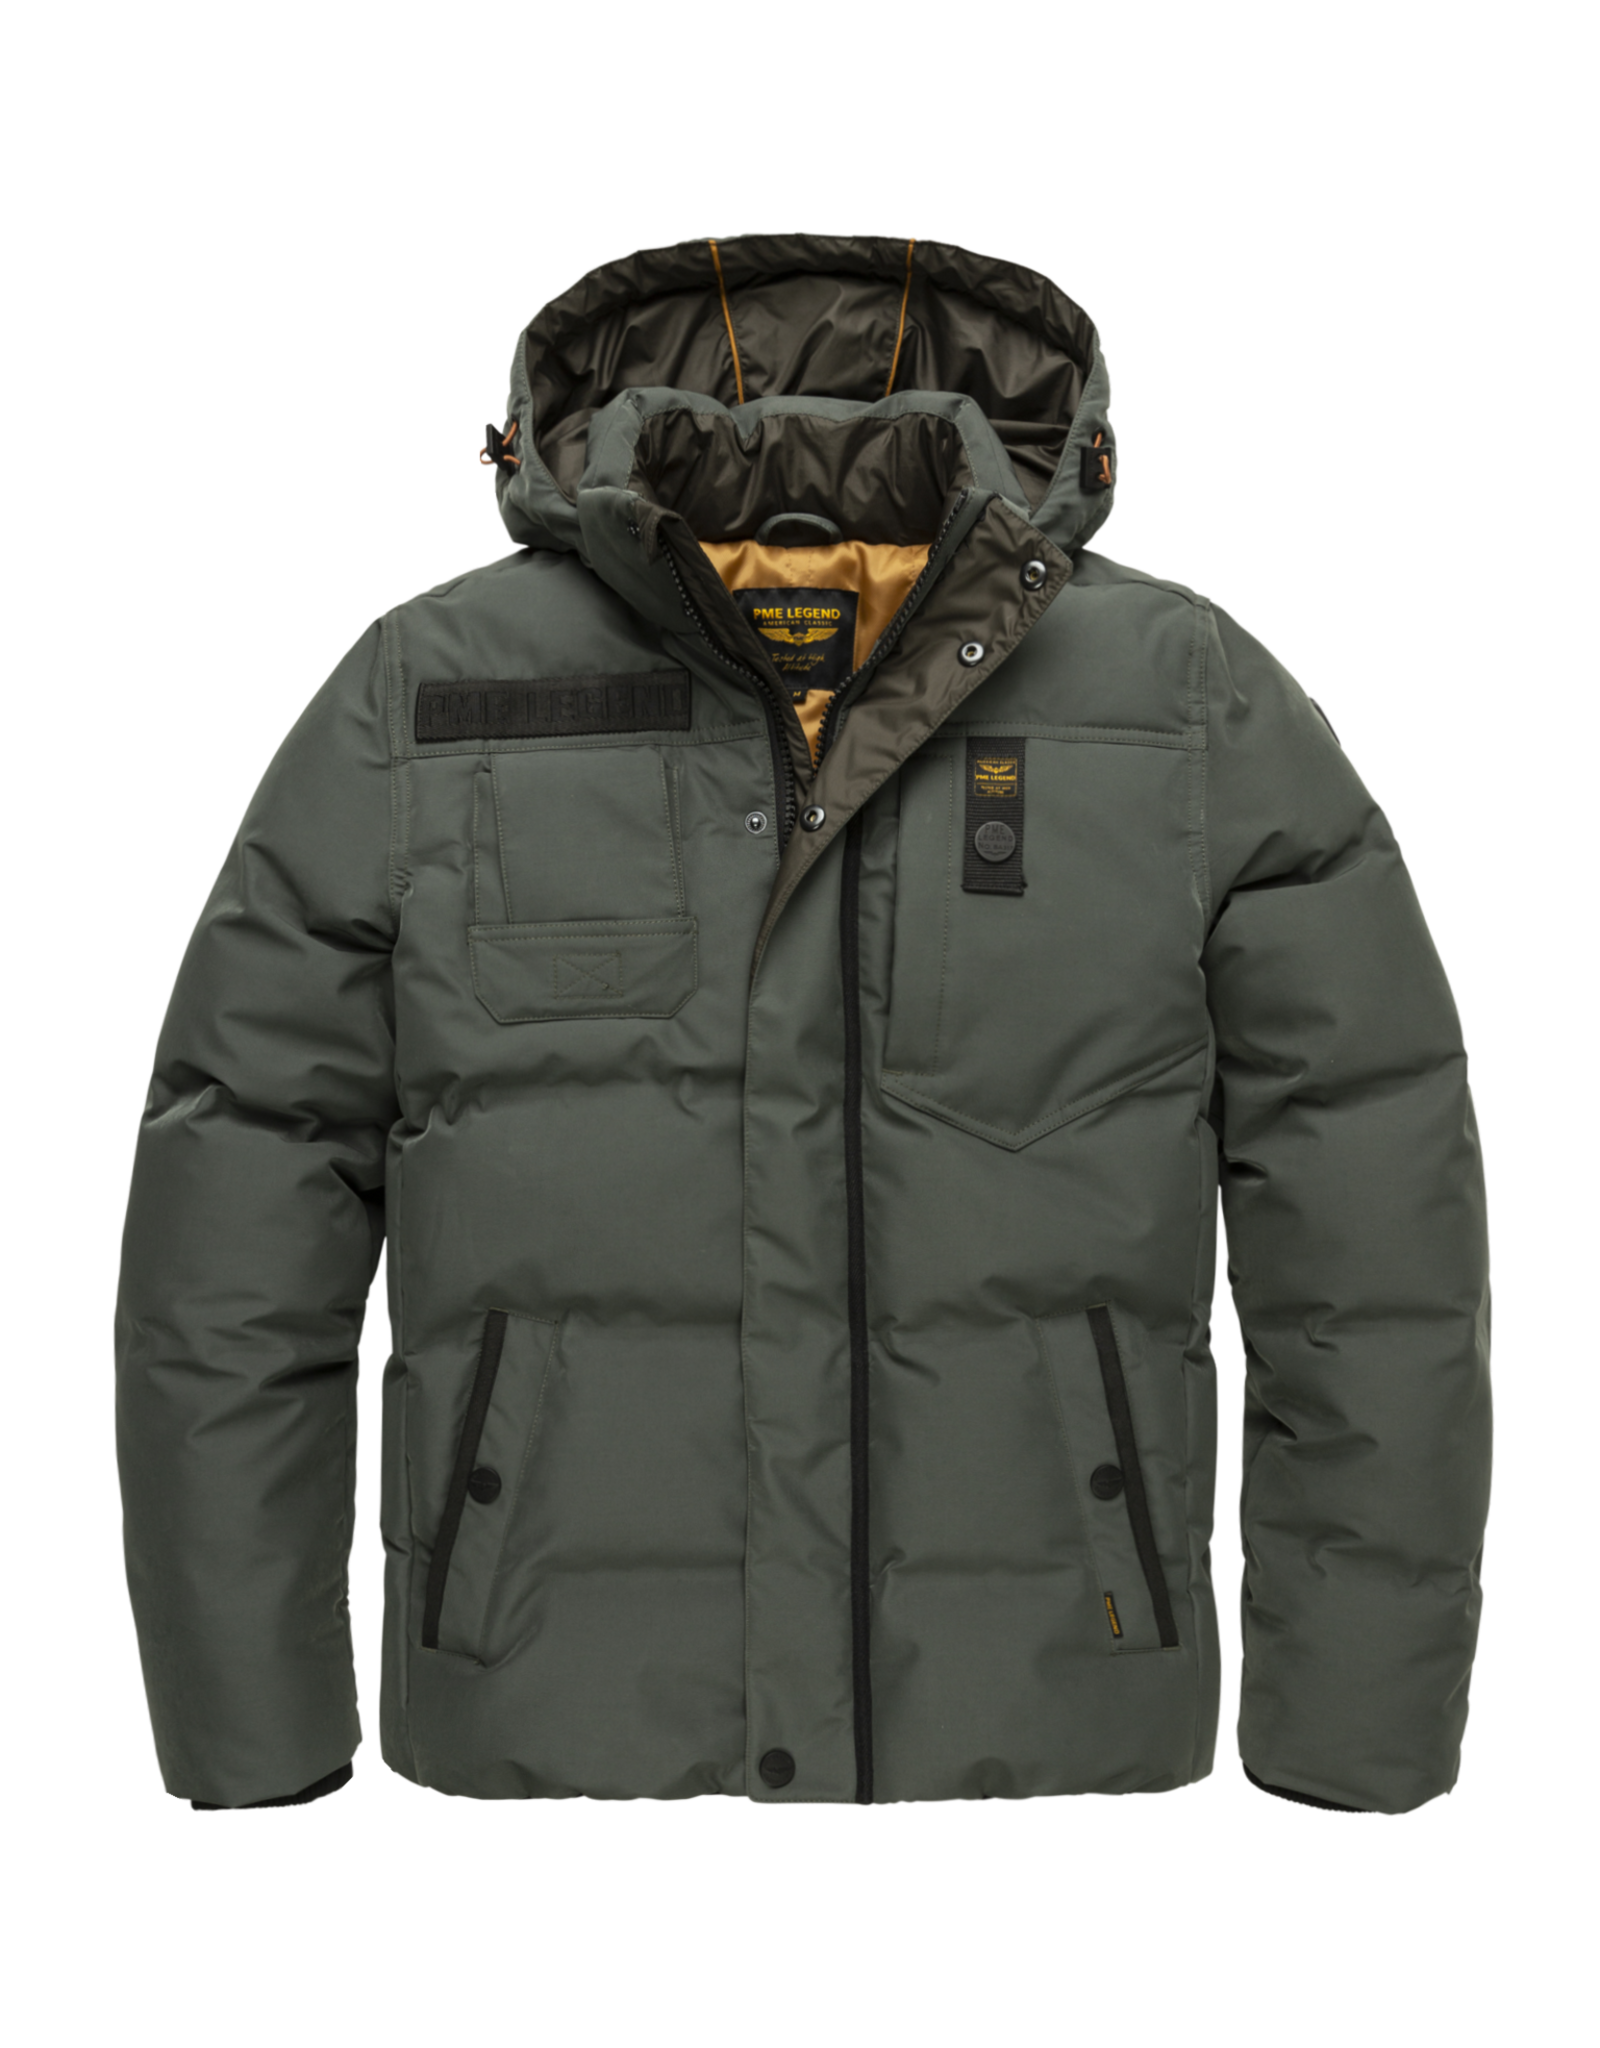 Pme Legend PME Legend Hooded Jacket Poly 6026